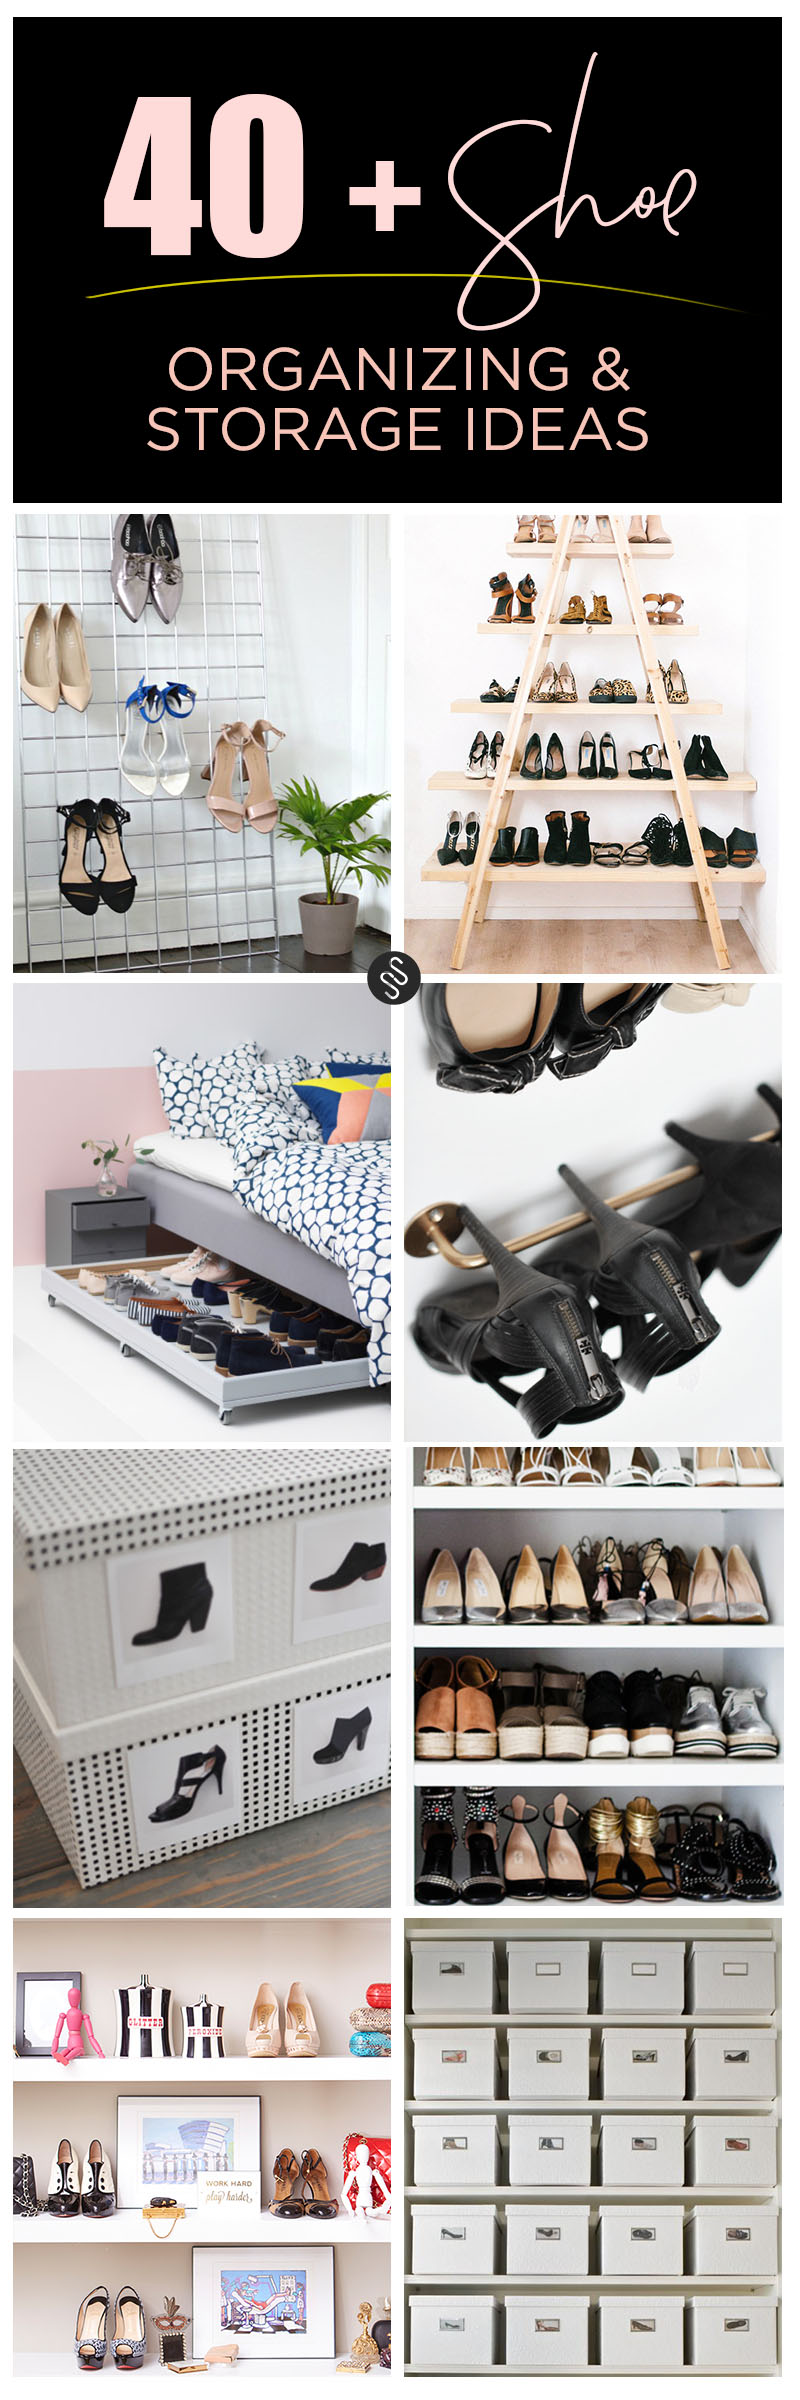 Shoe organizing and storage ideas // organized home // storage solutions // closet organizing // www.SimplySpaced.com